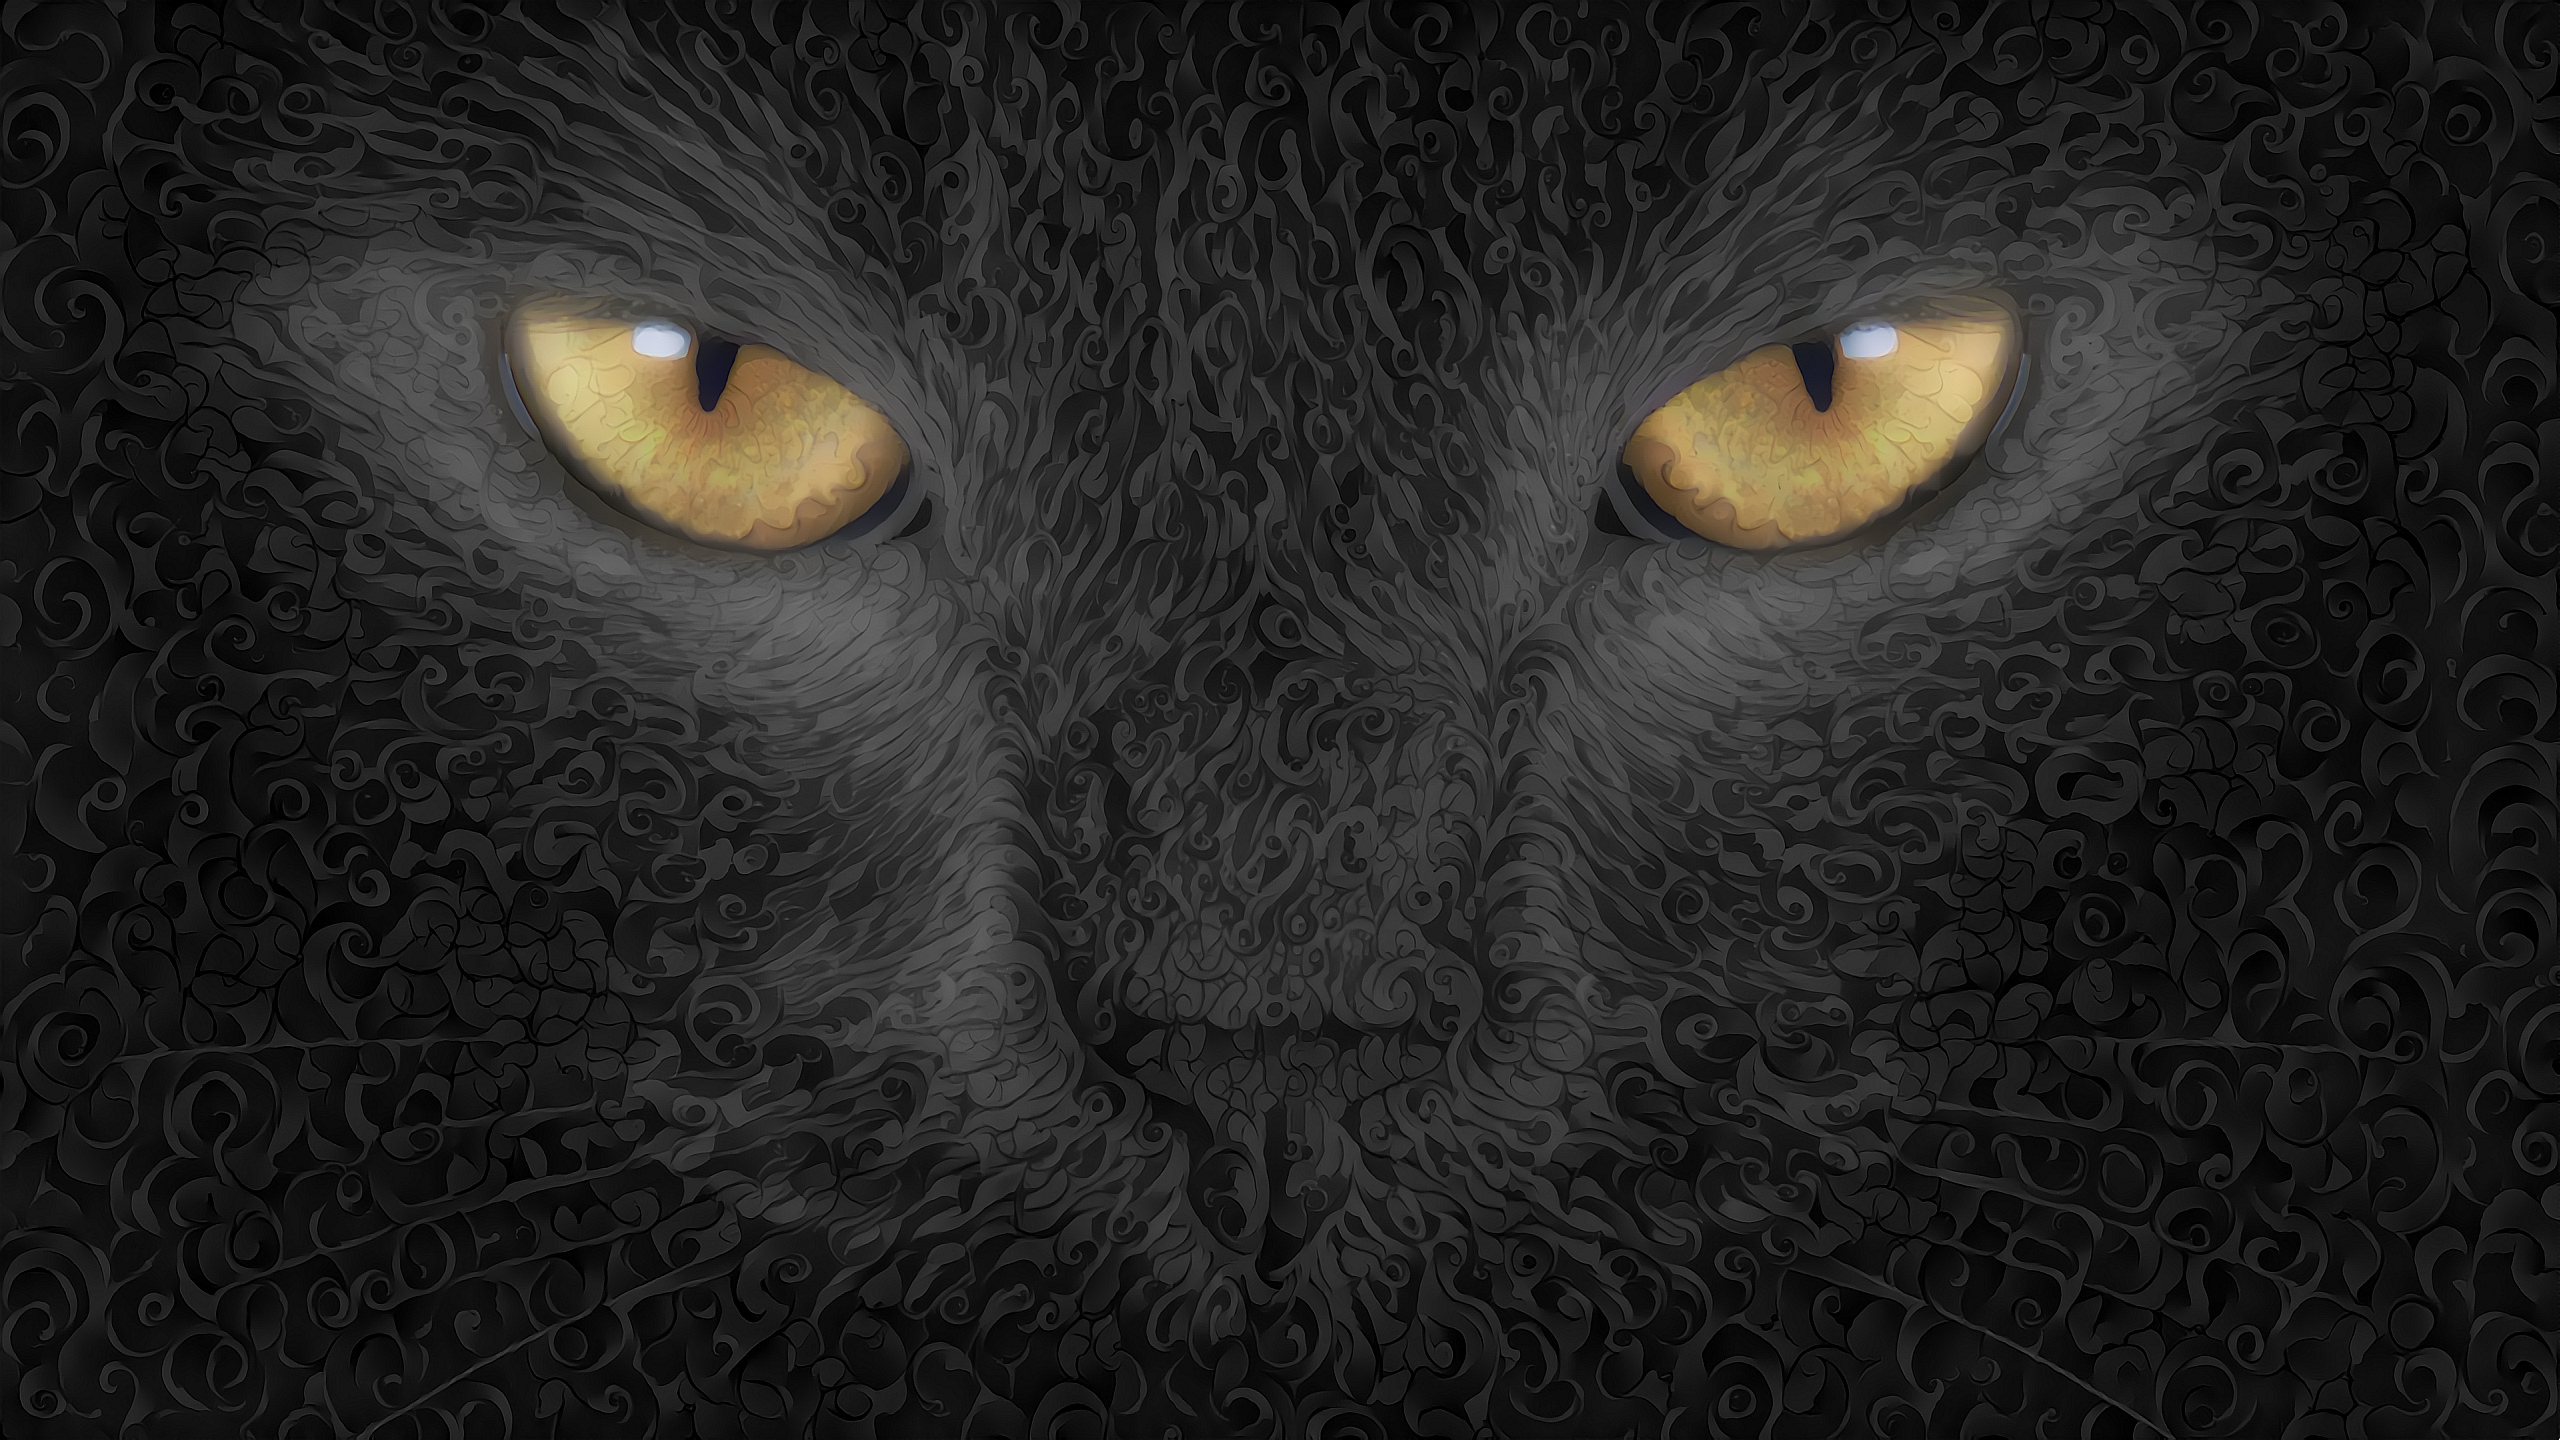 cat abstract art background, hd artist, 4k wallpapers, images